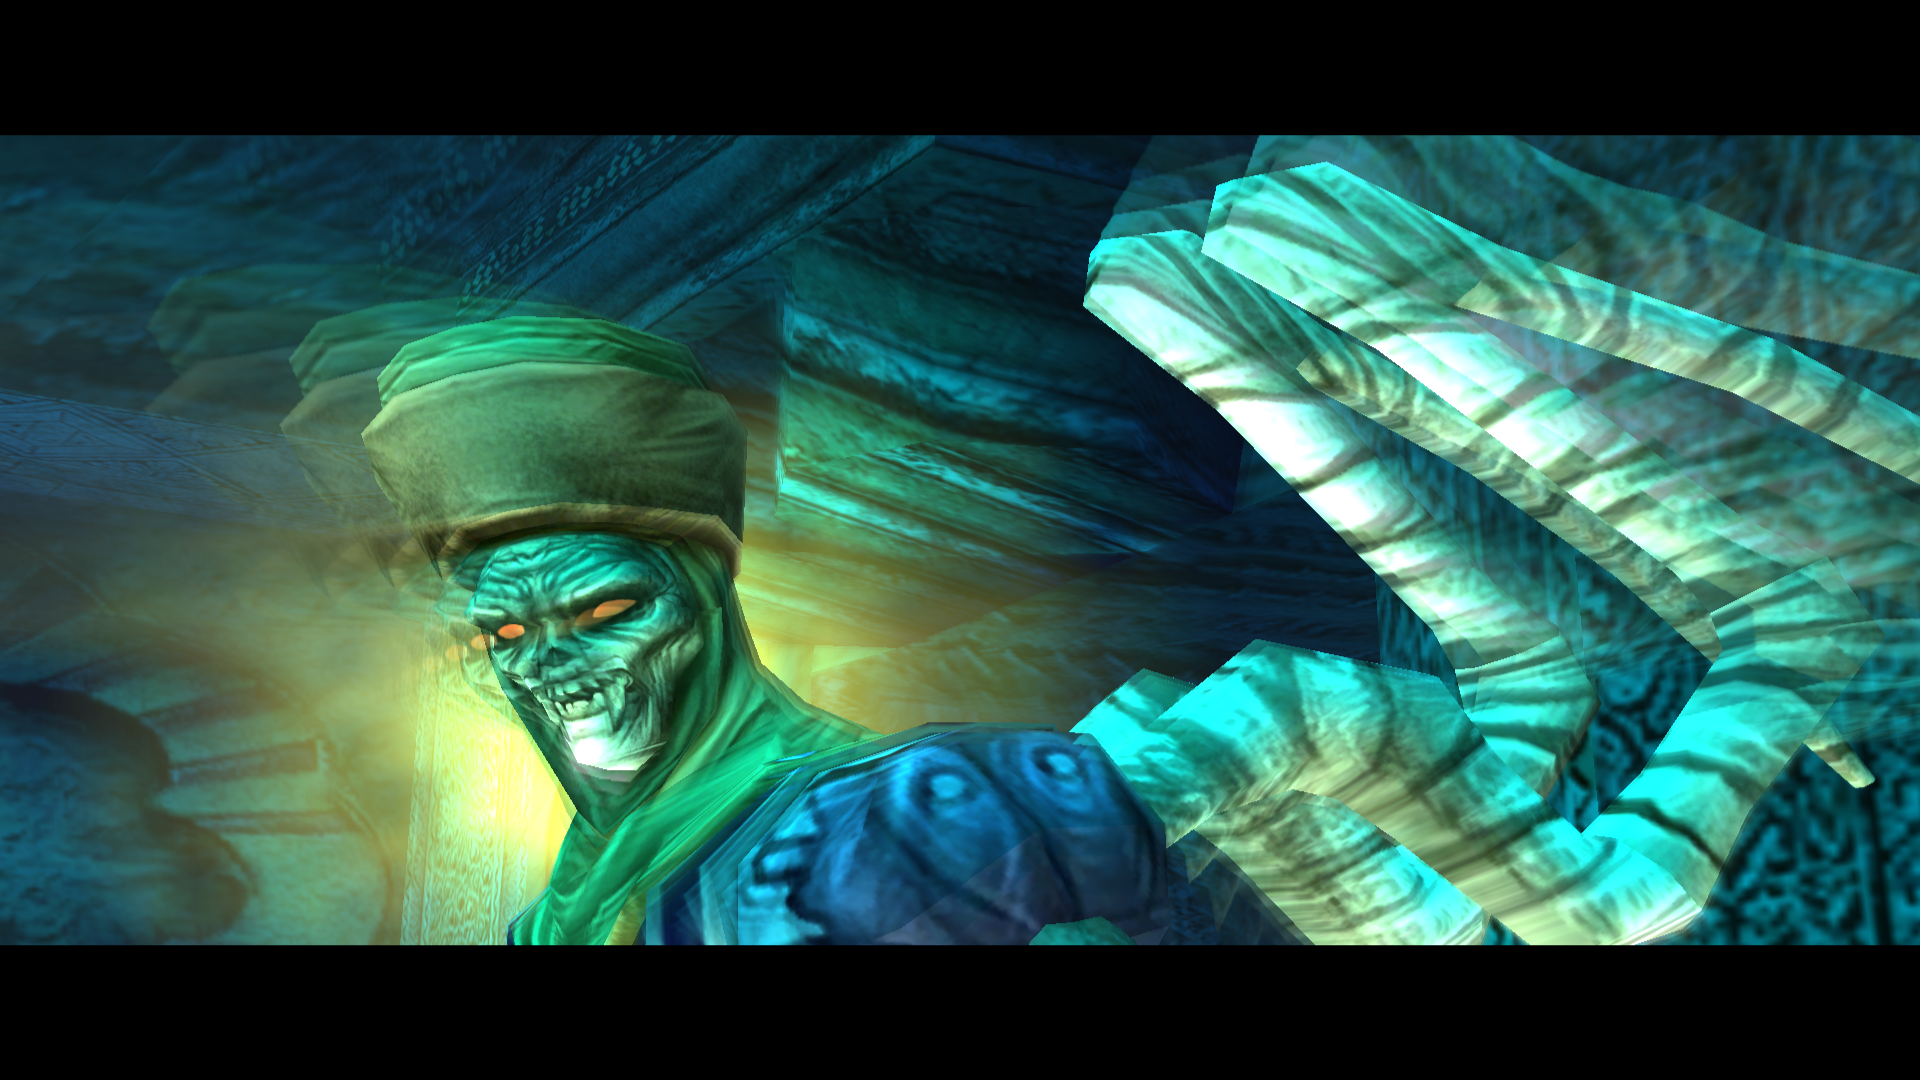 Defiance-AirForge-Mind-Cutscene-006.png